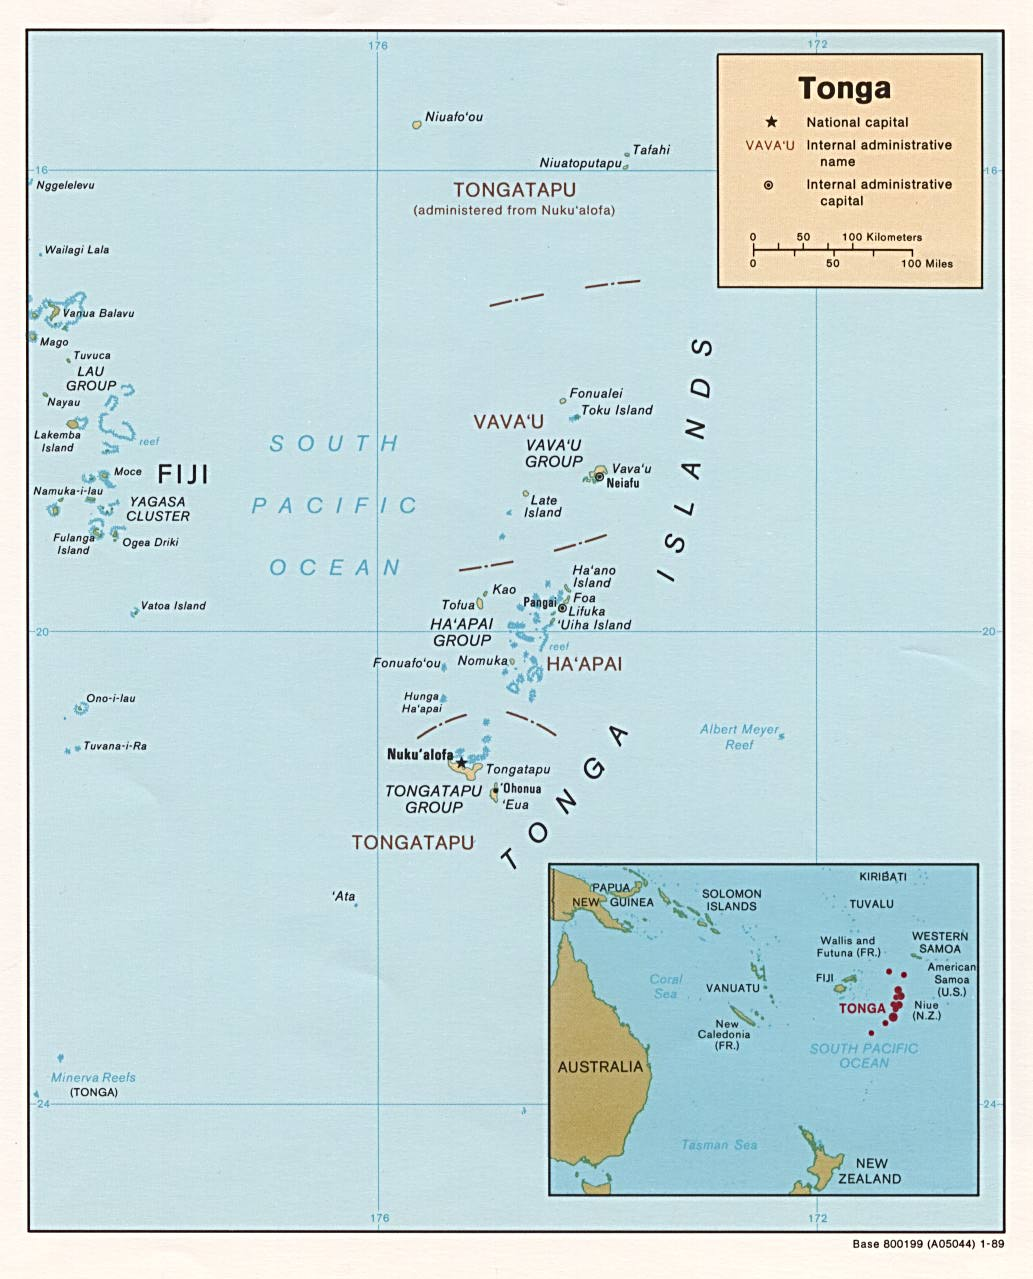 Httpsuploadwikimediaorgwikipediacommonsdd - Tonga map